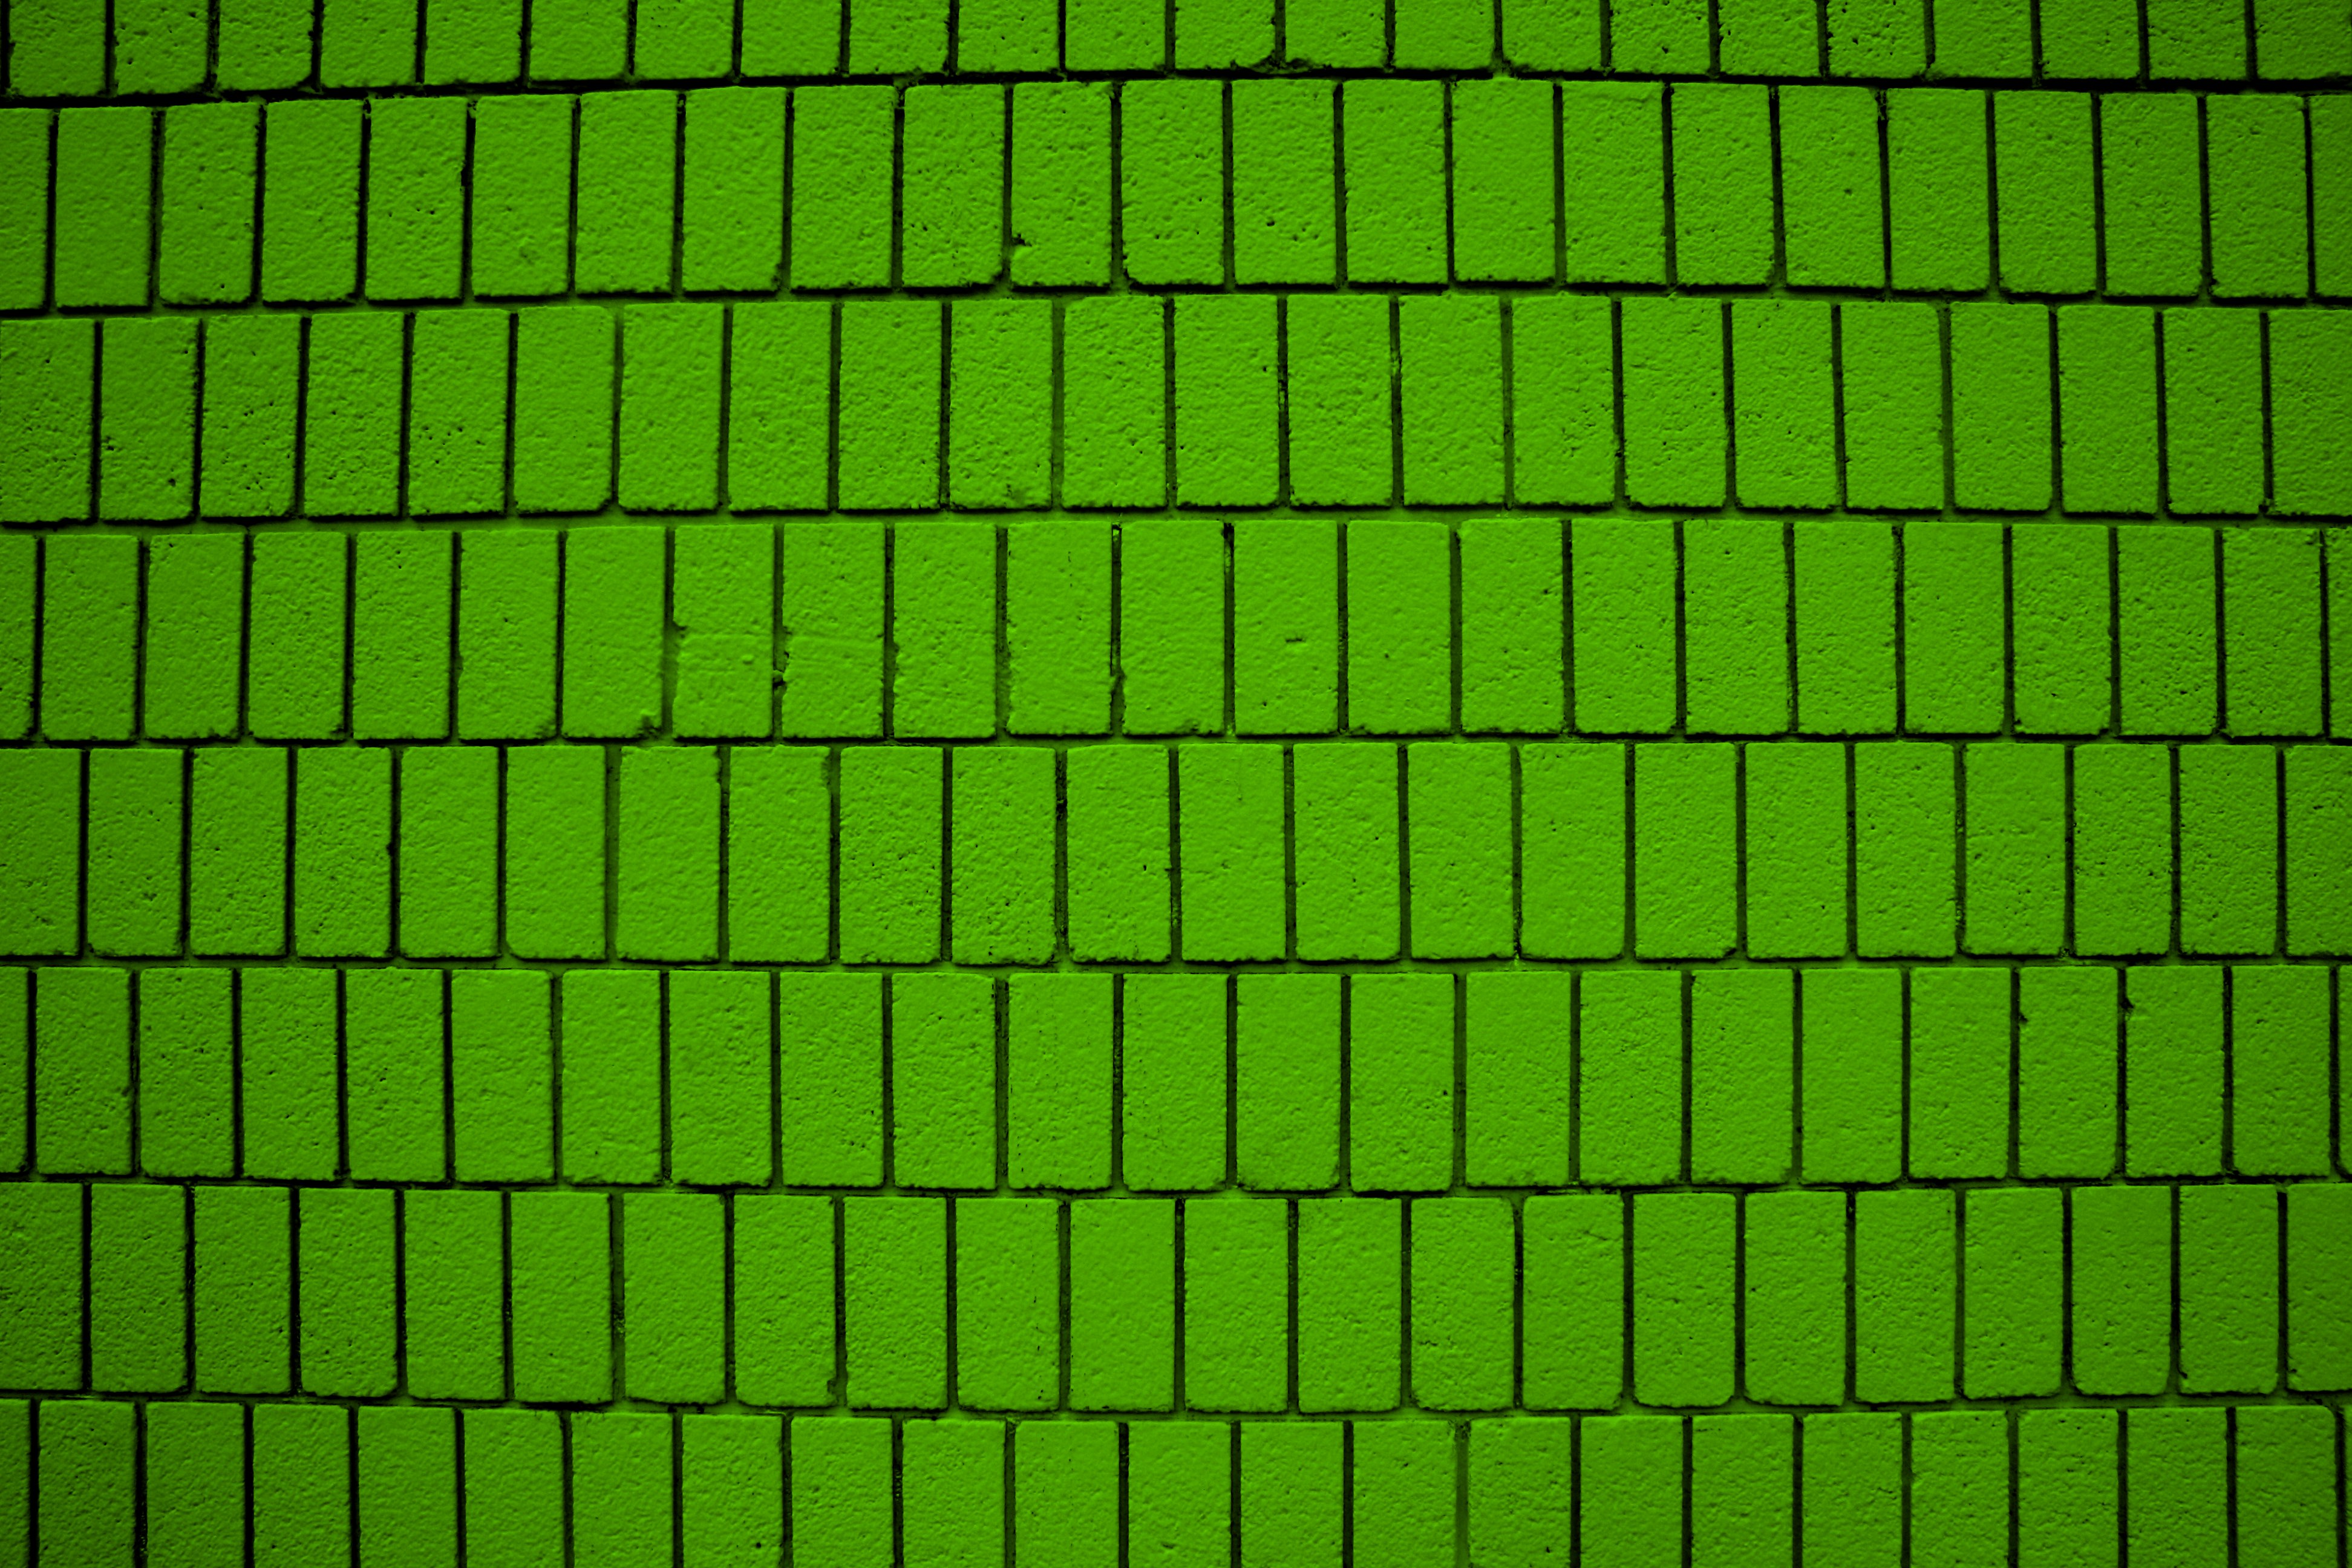 Lime green brick wall texture with vertical bricks picture for Lime green wallpaper for walls